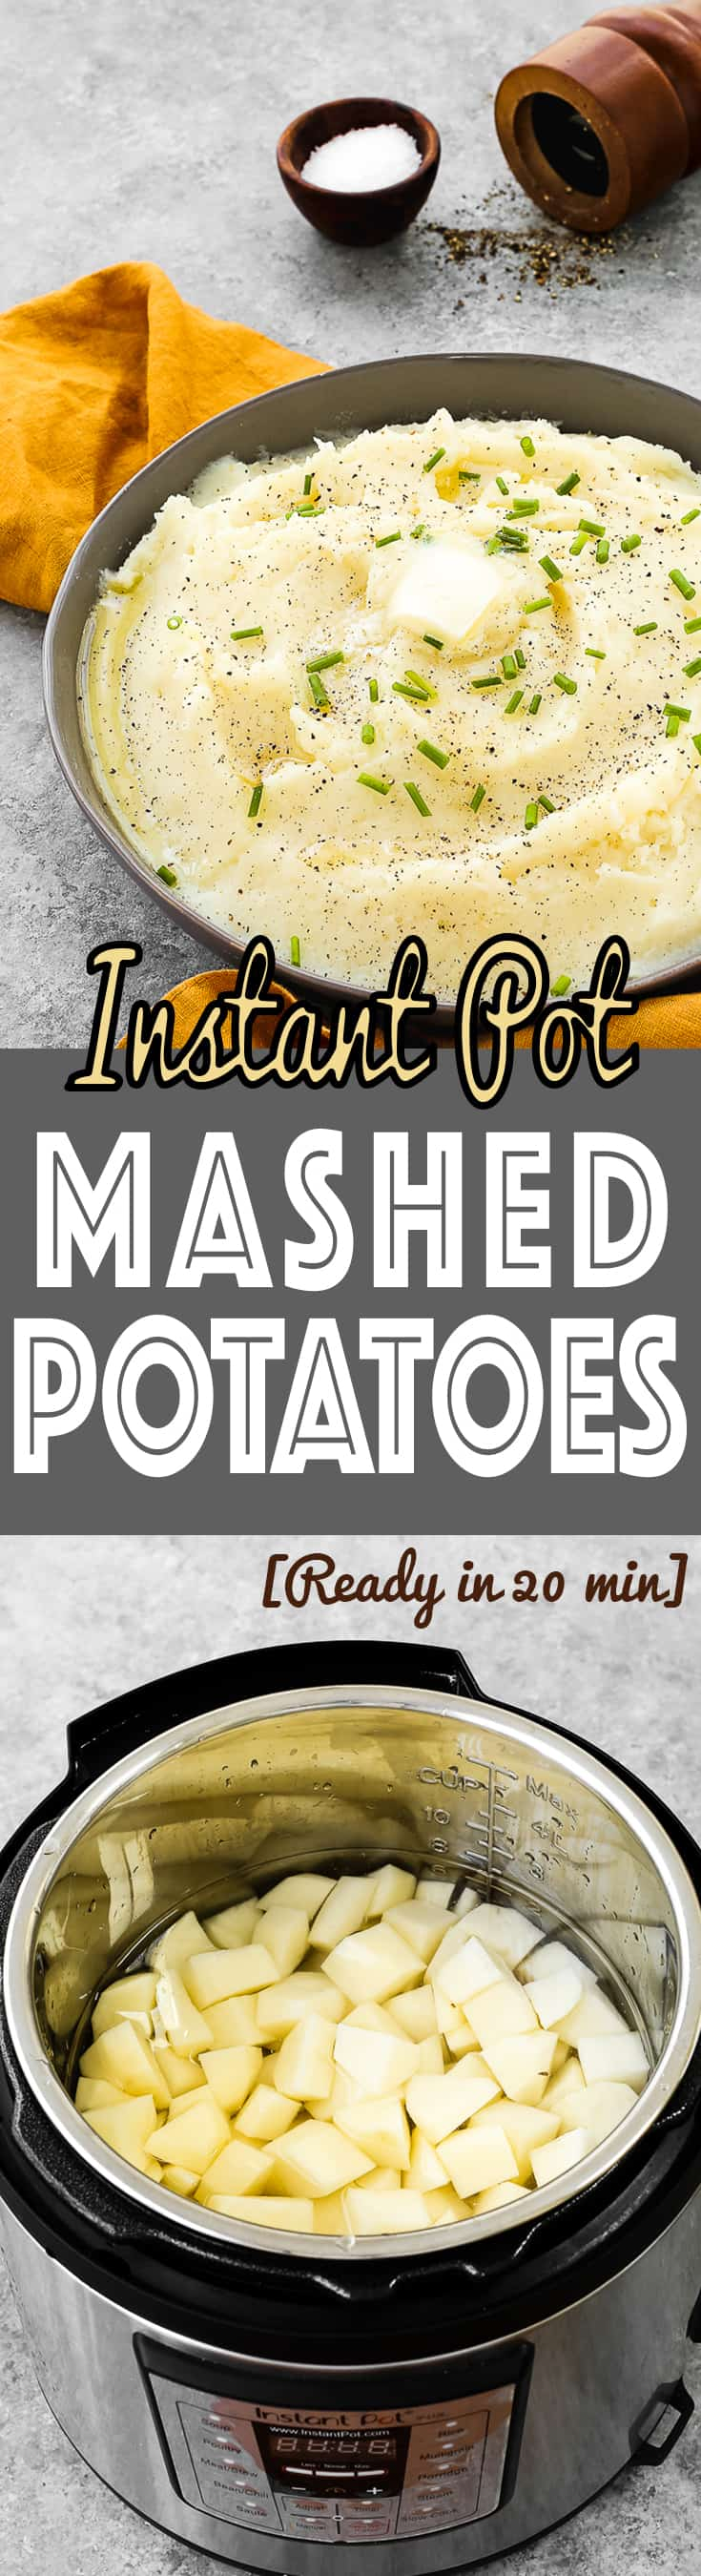 Instant Pot Mashed Potatoes-11